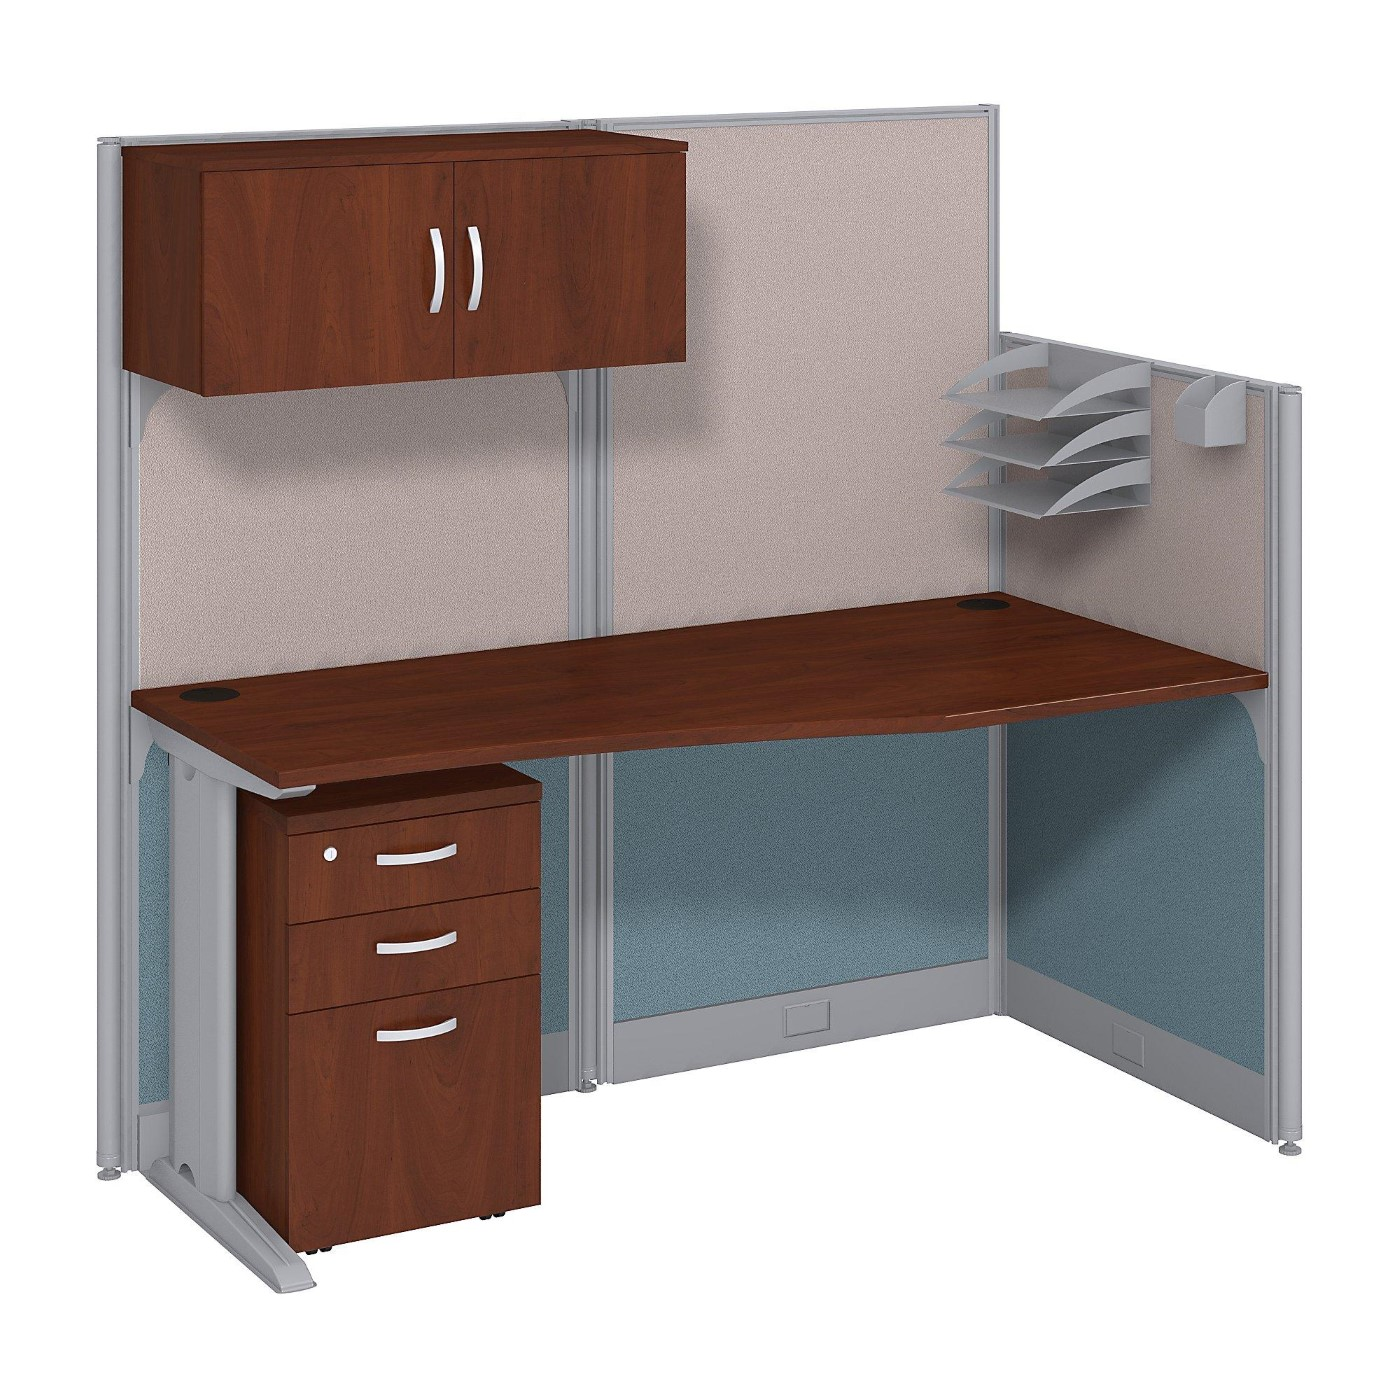 <font color=#c60><b>BUSH BUSINESS FURNITURE OFFICE IN AN HOUR 65W X 33D CUBICLE WORKSTATION WITH STORAGE. FREE SHIPPING</font></b></font></b>